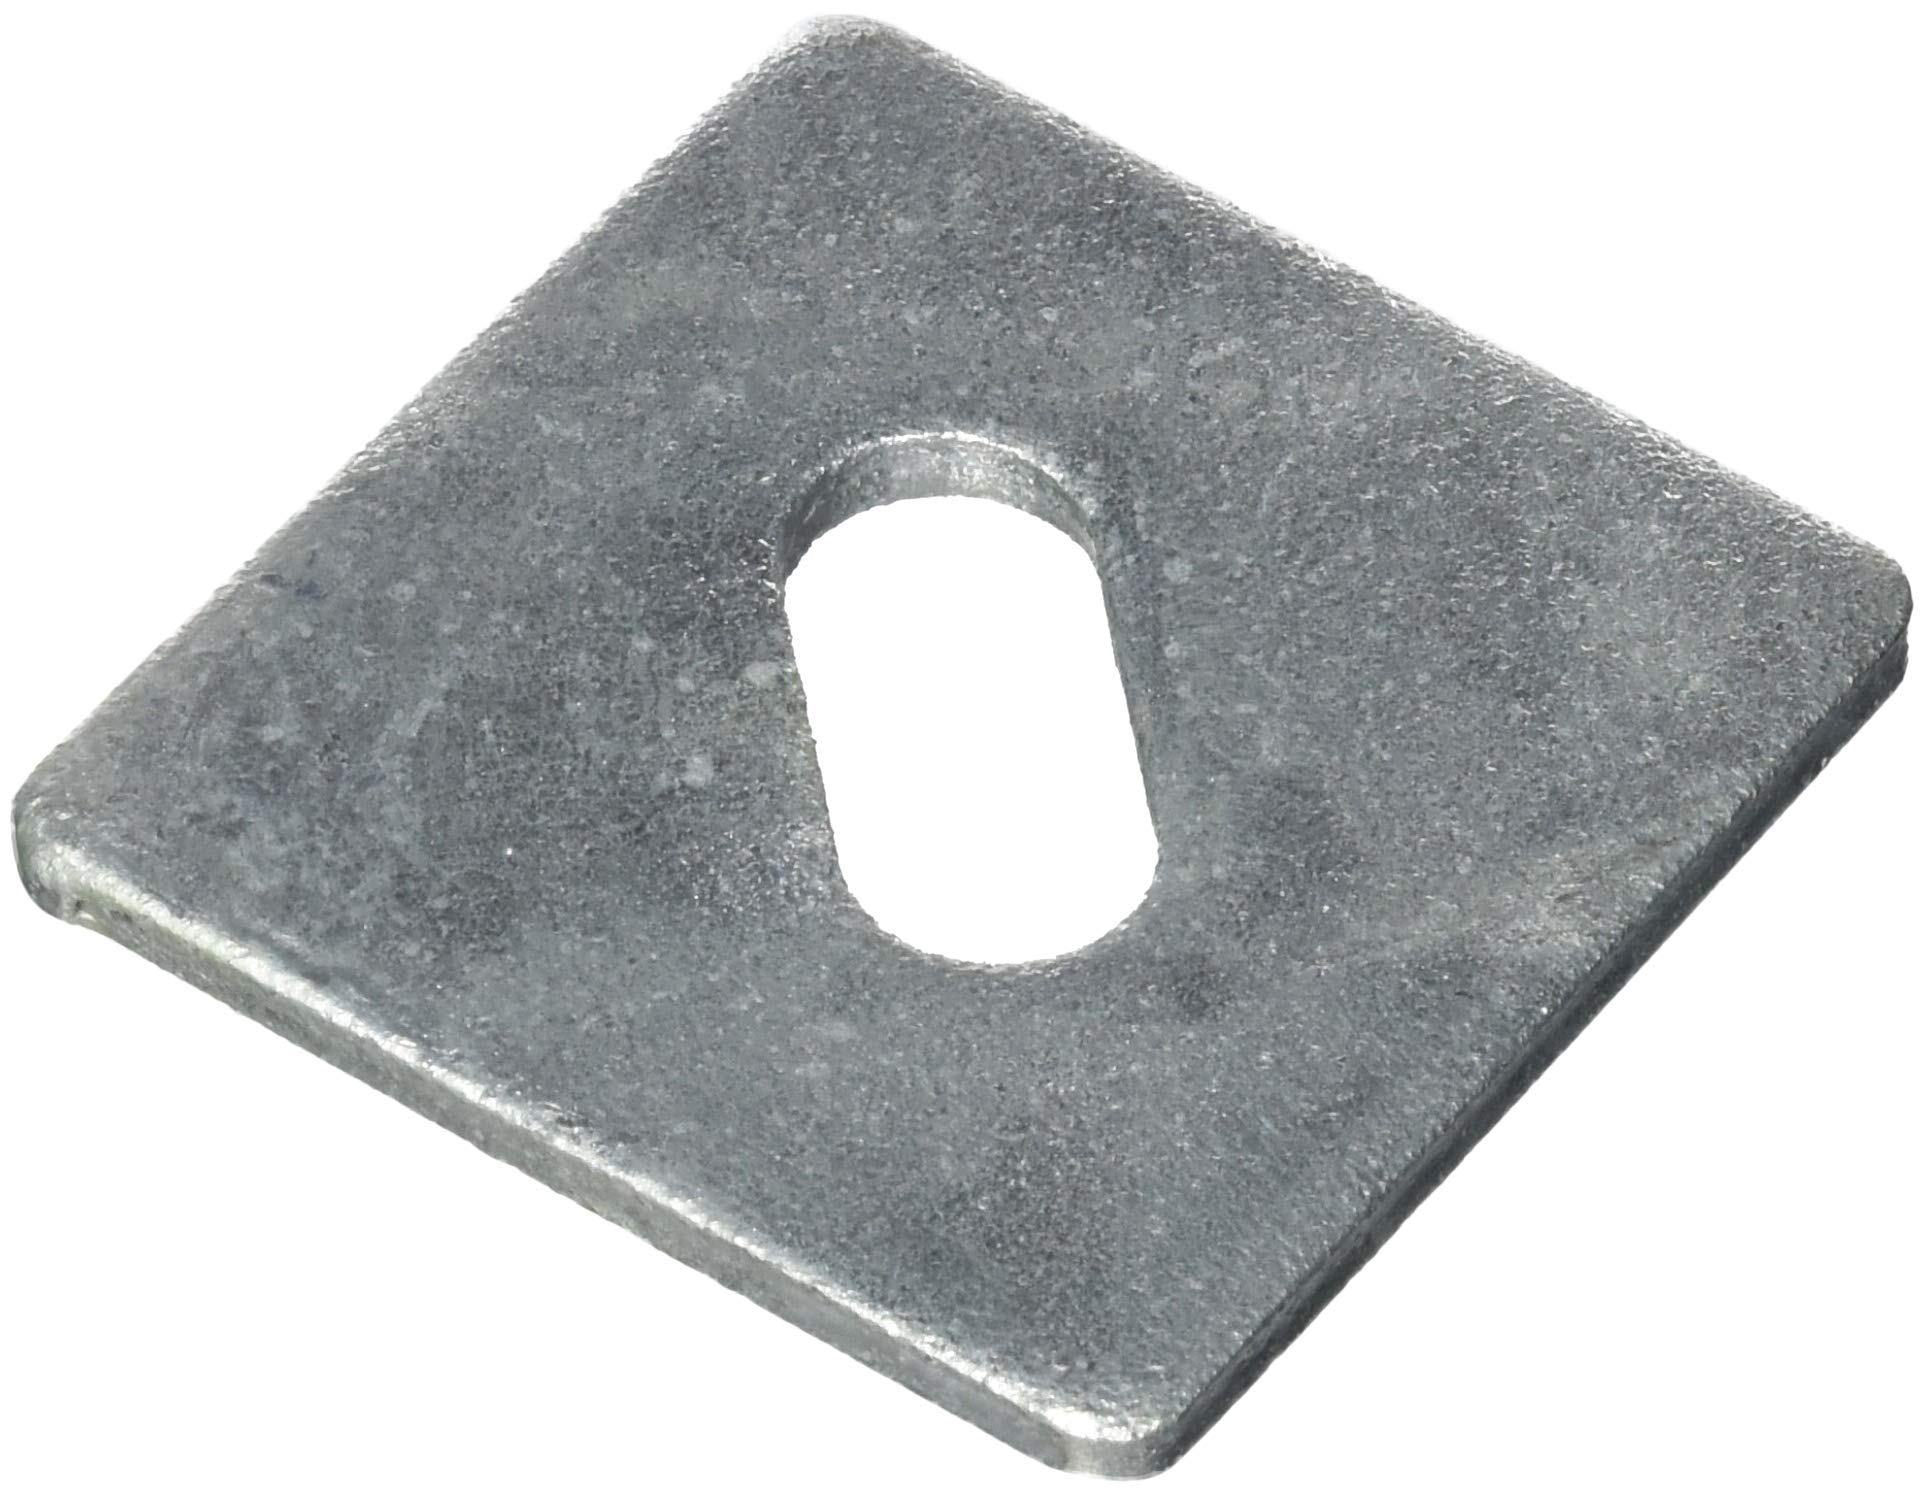 Hard-to-Find Fastener 014973151874 EQ Code Square Washers, 5/8 x 3x3 x1/4, Piece-50